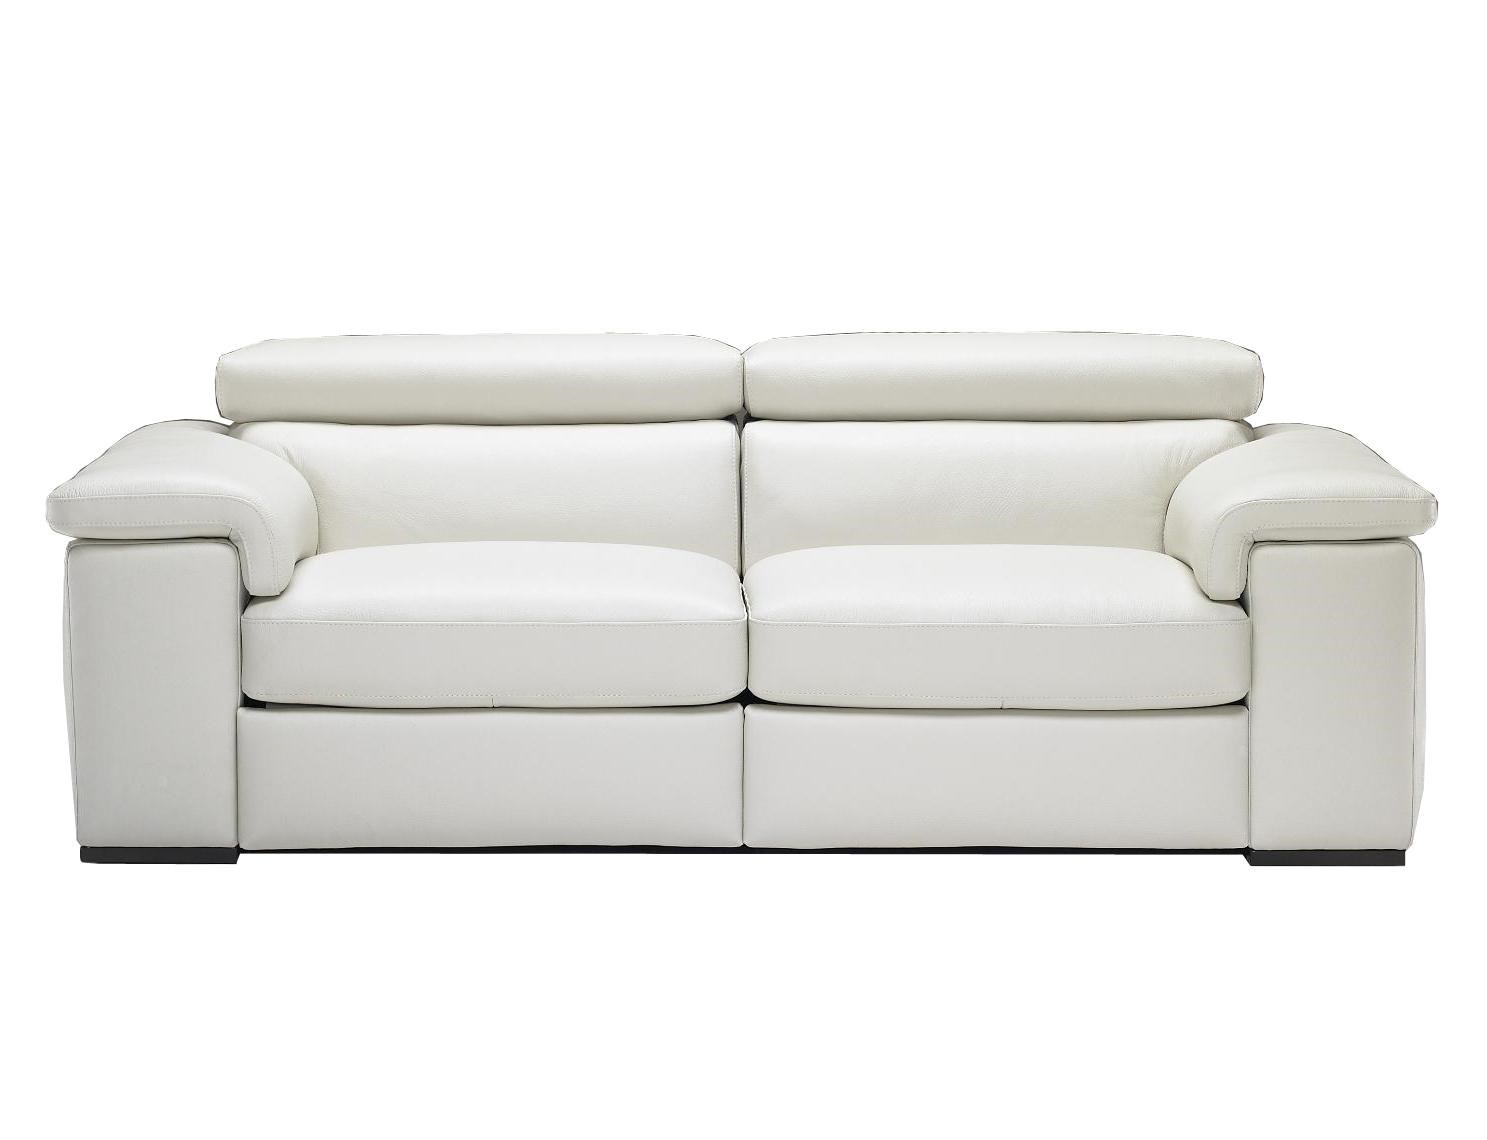 Natuzzi Editions B620 Contemporary Power Reclining Leather Sofa with Adjustable Headrests - Becker Furniture World - Reclining Sofa  sc 1 st  Becker Furniture World : leather loveseat power recliner - islam-shia.org